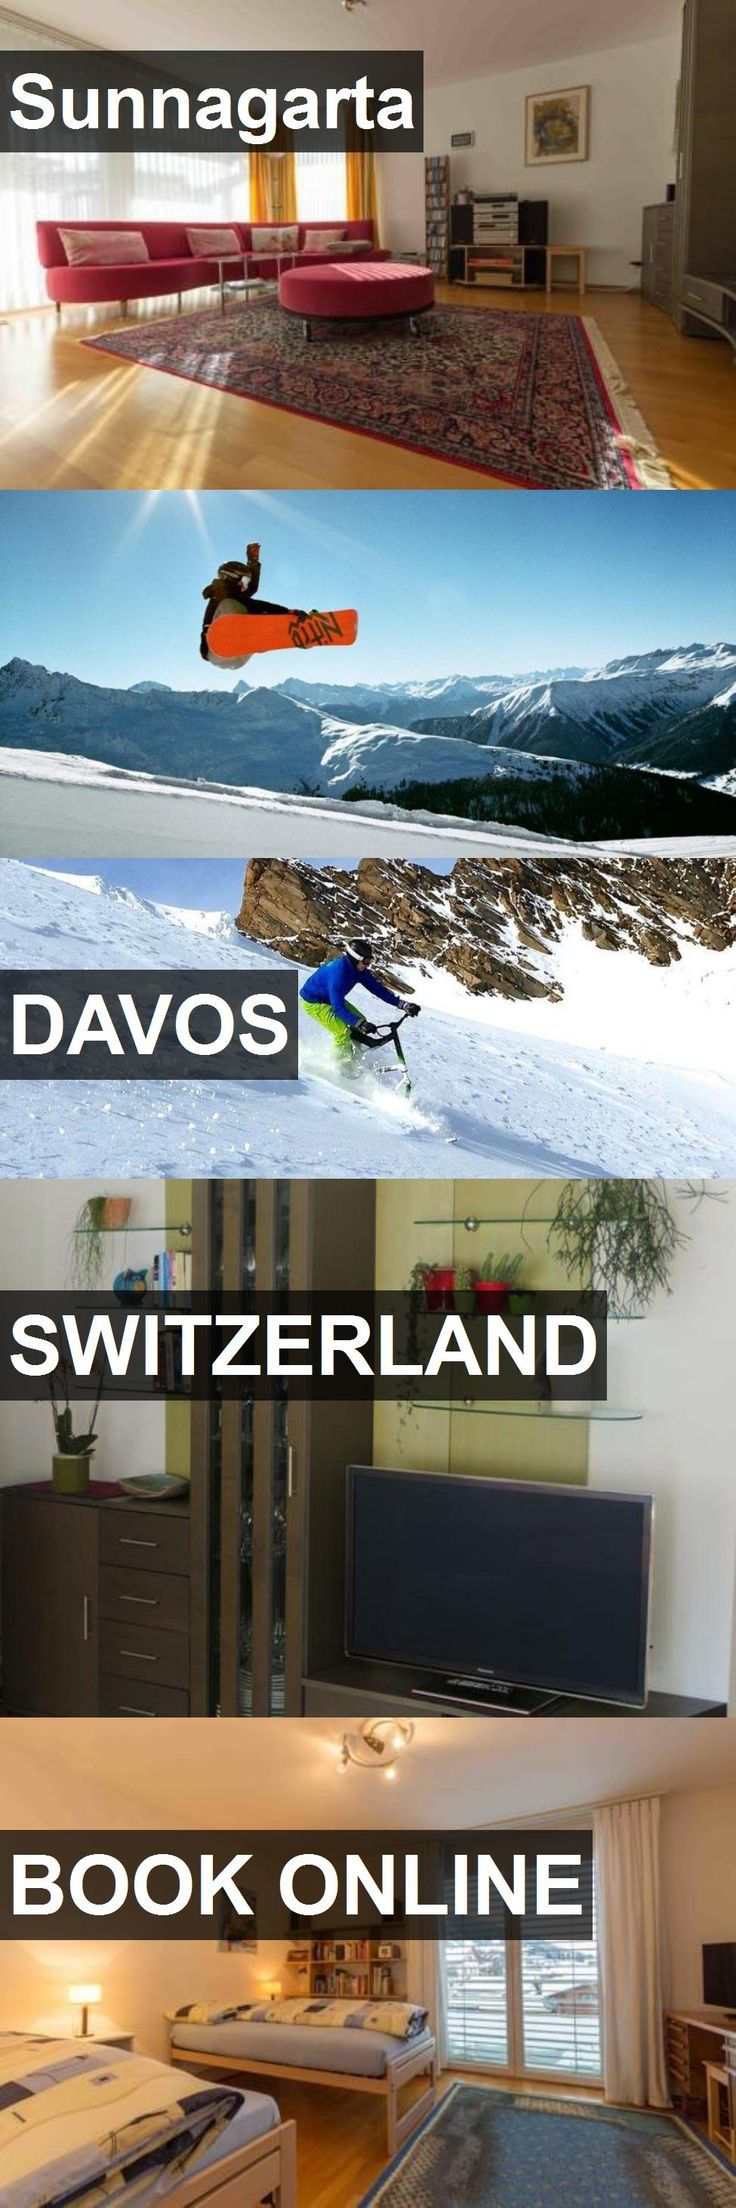 Hotel Sunnagarta in Davos, Switzerland. For more information, photos, reviews and best prices please follow the link. #Switzerland #Davos #travel #vacation #hotel